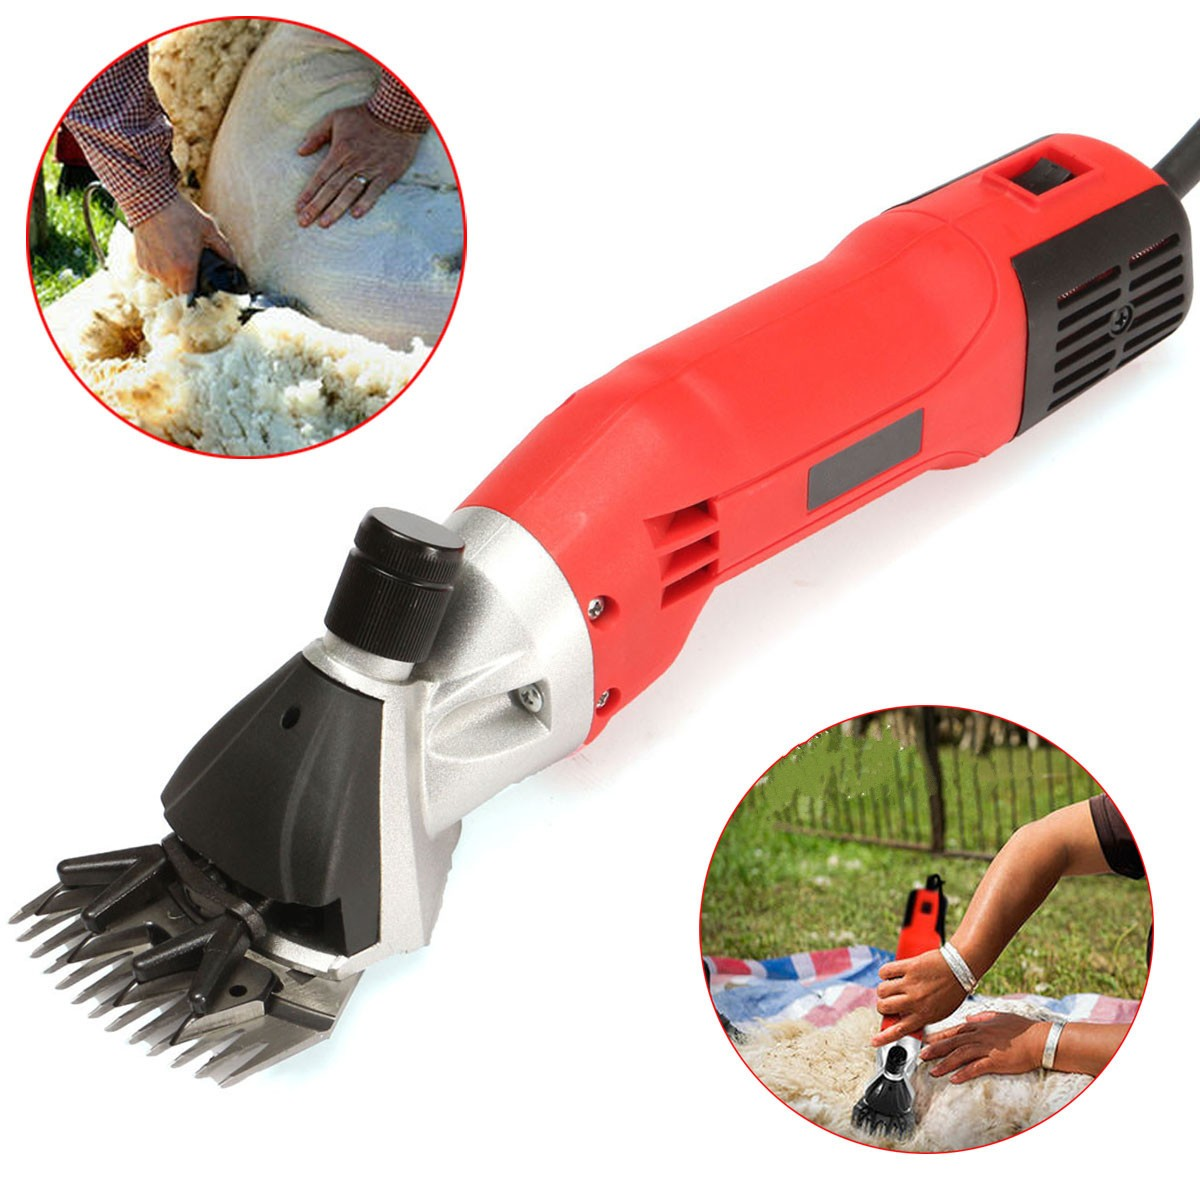 Electric Sheep Goats Shearing Clipper Shear Alpaca Farm Shears Tool Aluminum Power Scissors 500W 220V AC new 680w sheep wool clipper electric sheep goats shearing clipper shears 1 set 13 straight tooth blade comb